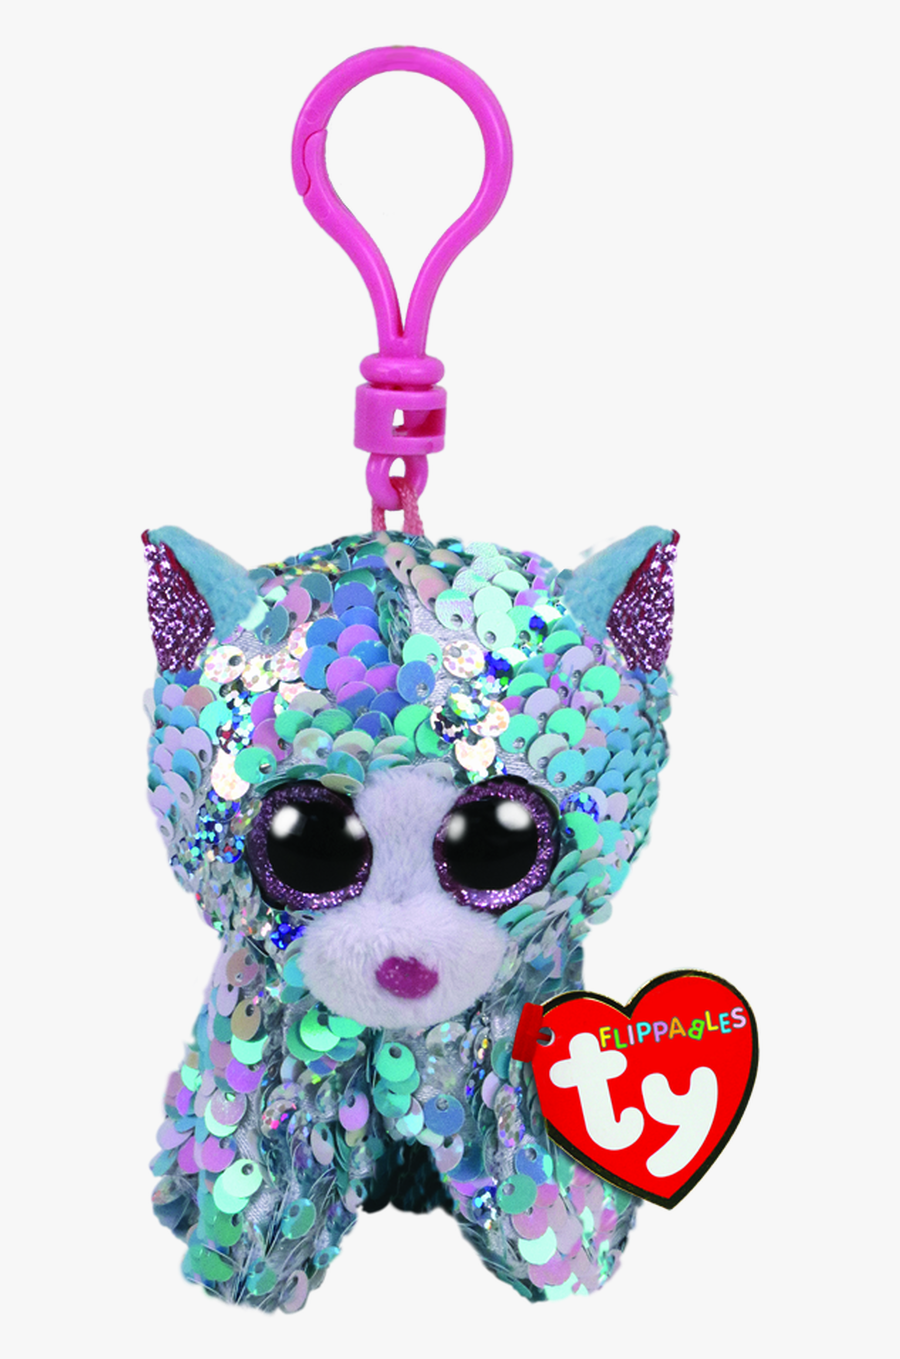 Ty Beanie Boo Flippables Clip Whimsy Cat - Keychain Beanie Boo Cat, Transparent Clipart